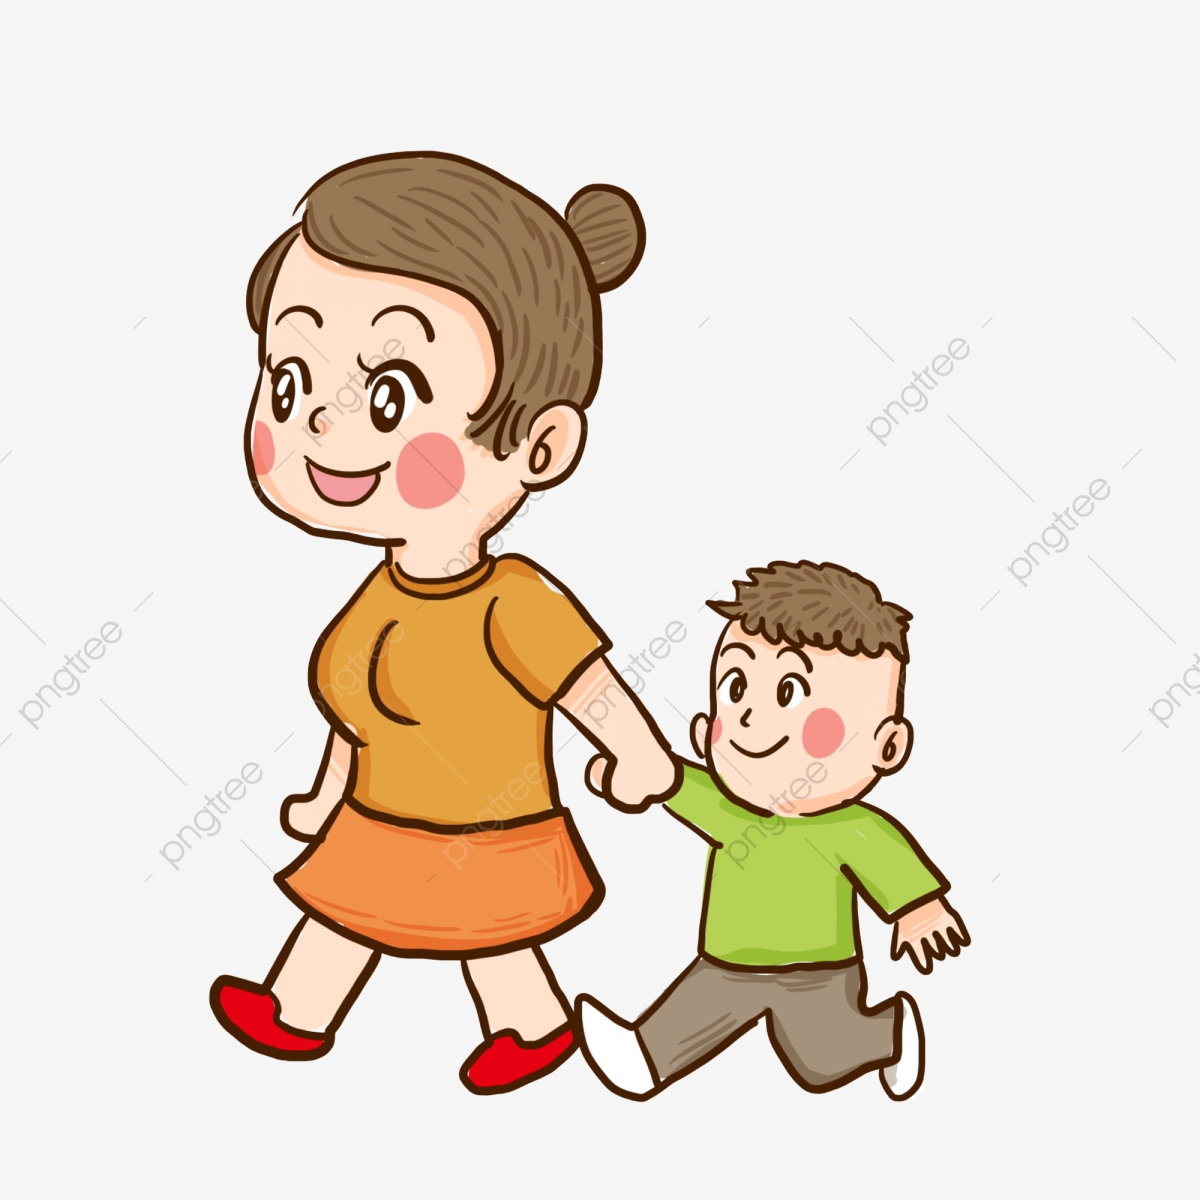 Painted Mom And Child Cartoon Character Design Painted Cartoon Characters Mom Png Transparent Clipart Image And Psd File For Free Download